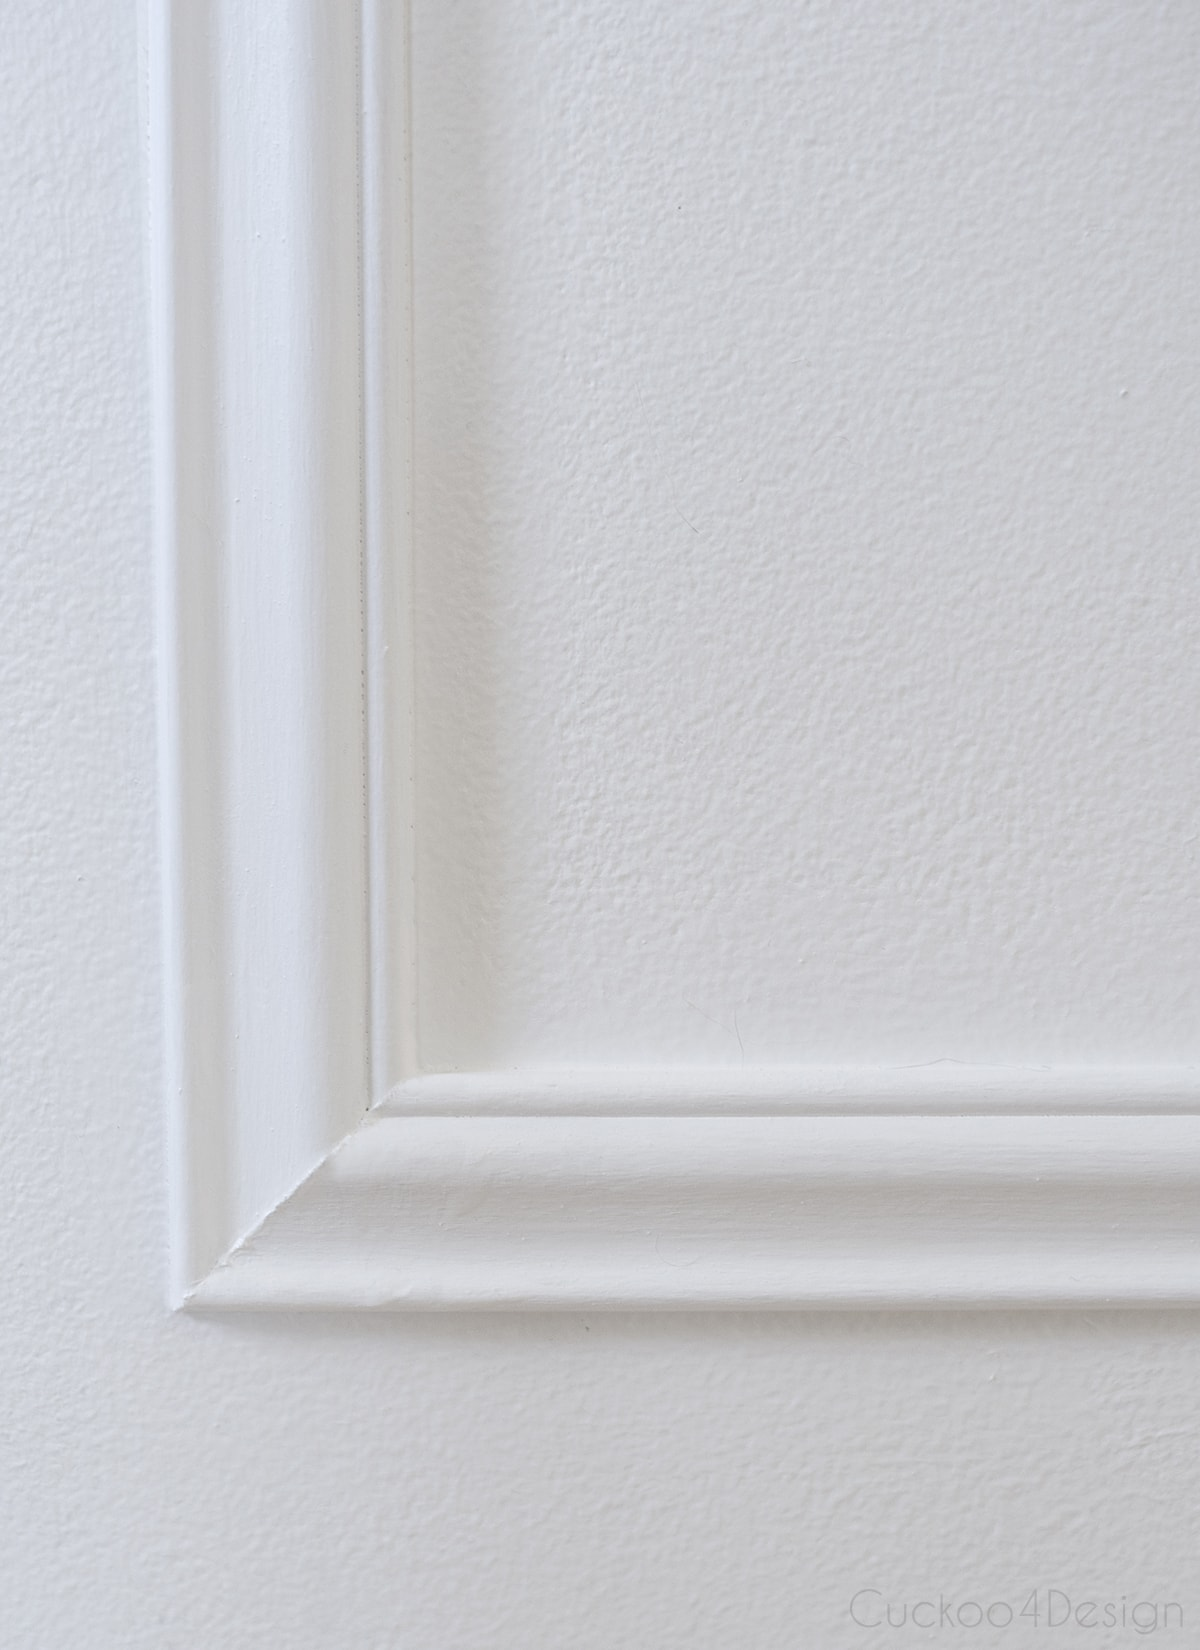 detailed photo of picture frame wall moulding corner